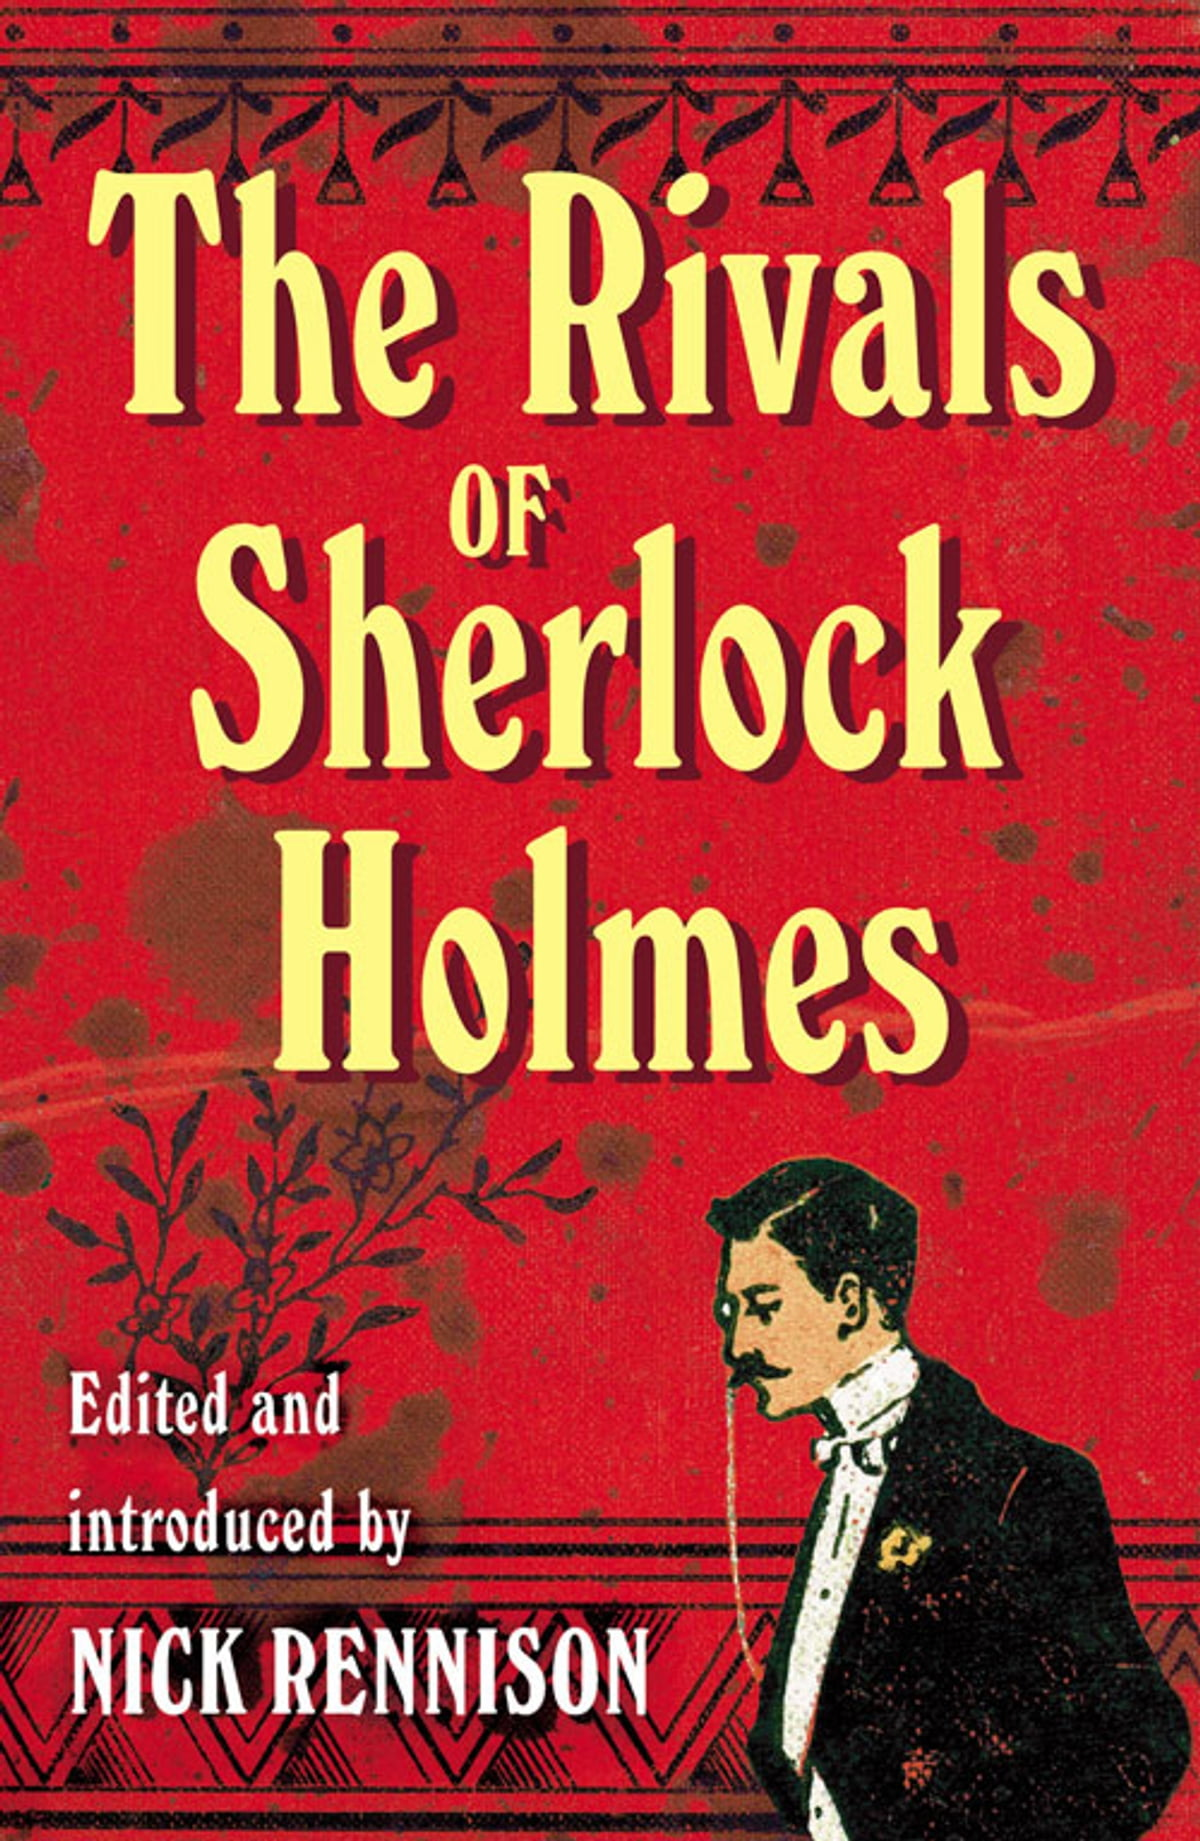 The Rivals of Sherlock Holmes eBook by Nick Rennison - 9781843440871 |  Rakuten Kobo